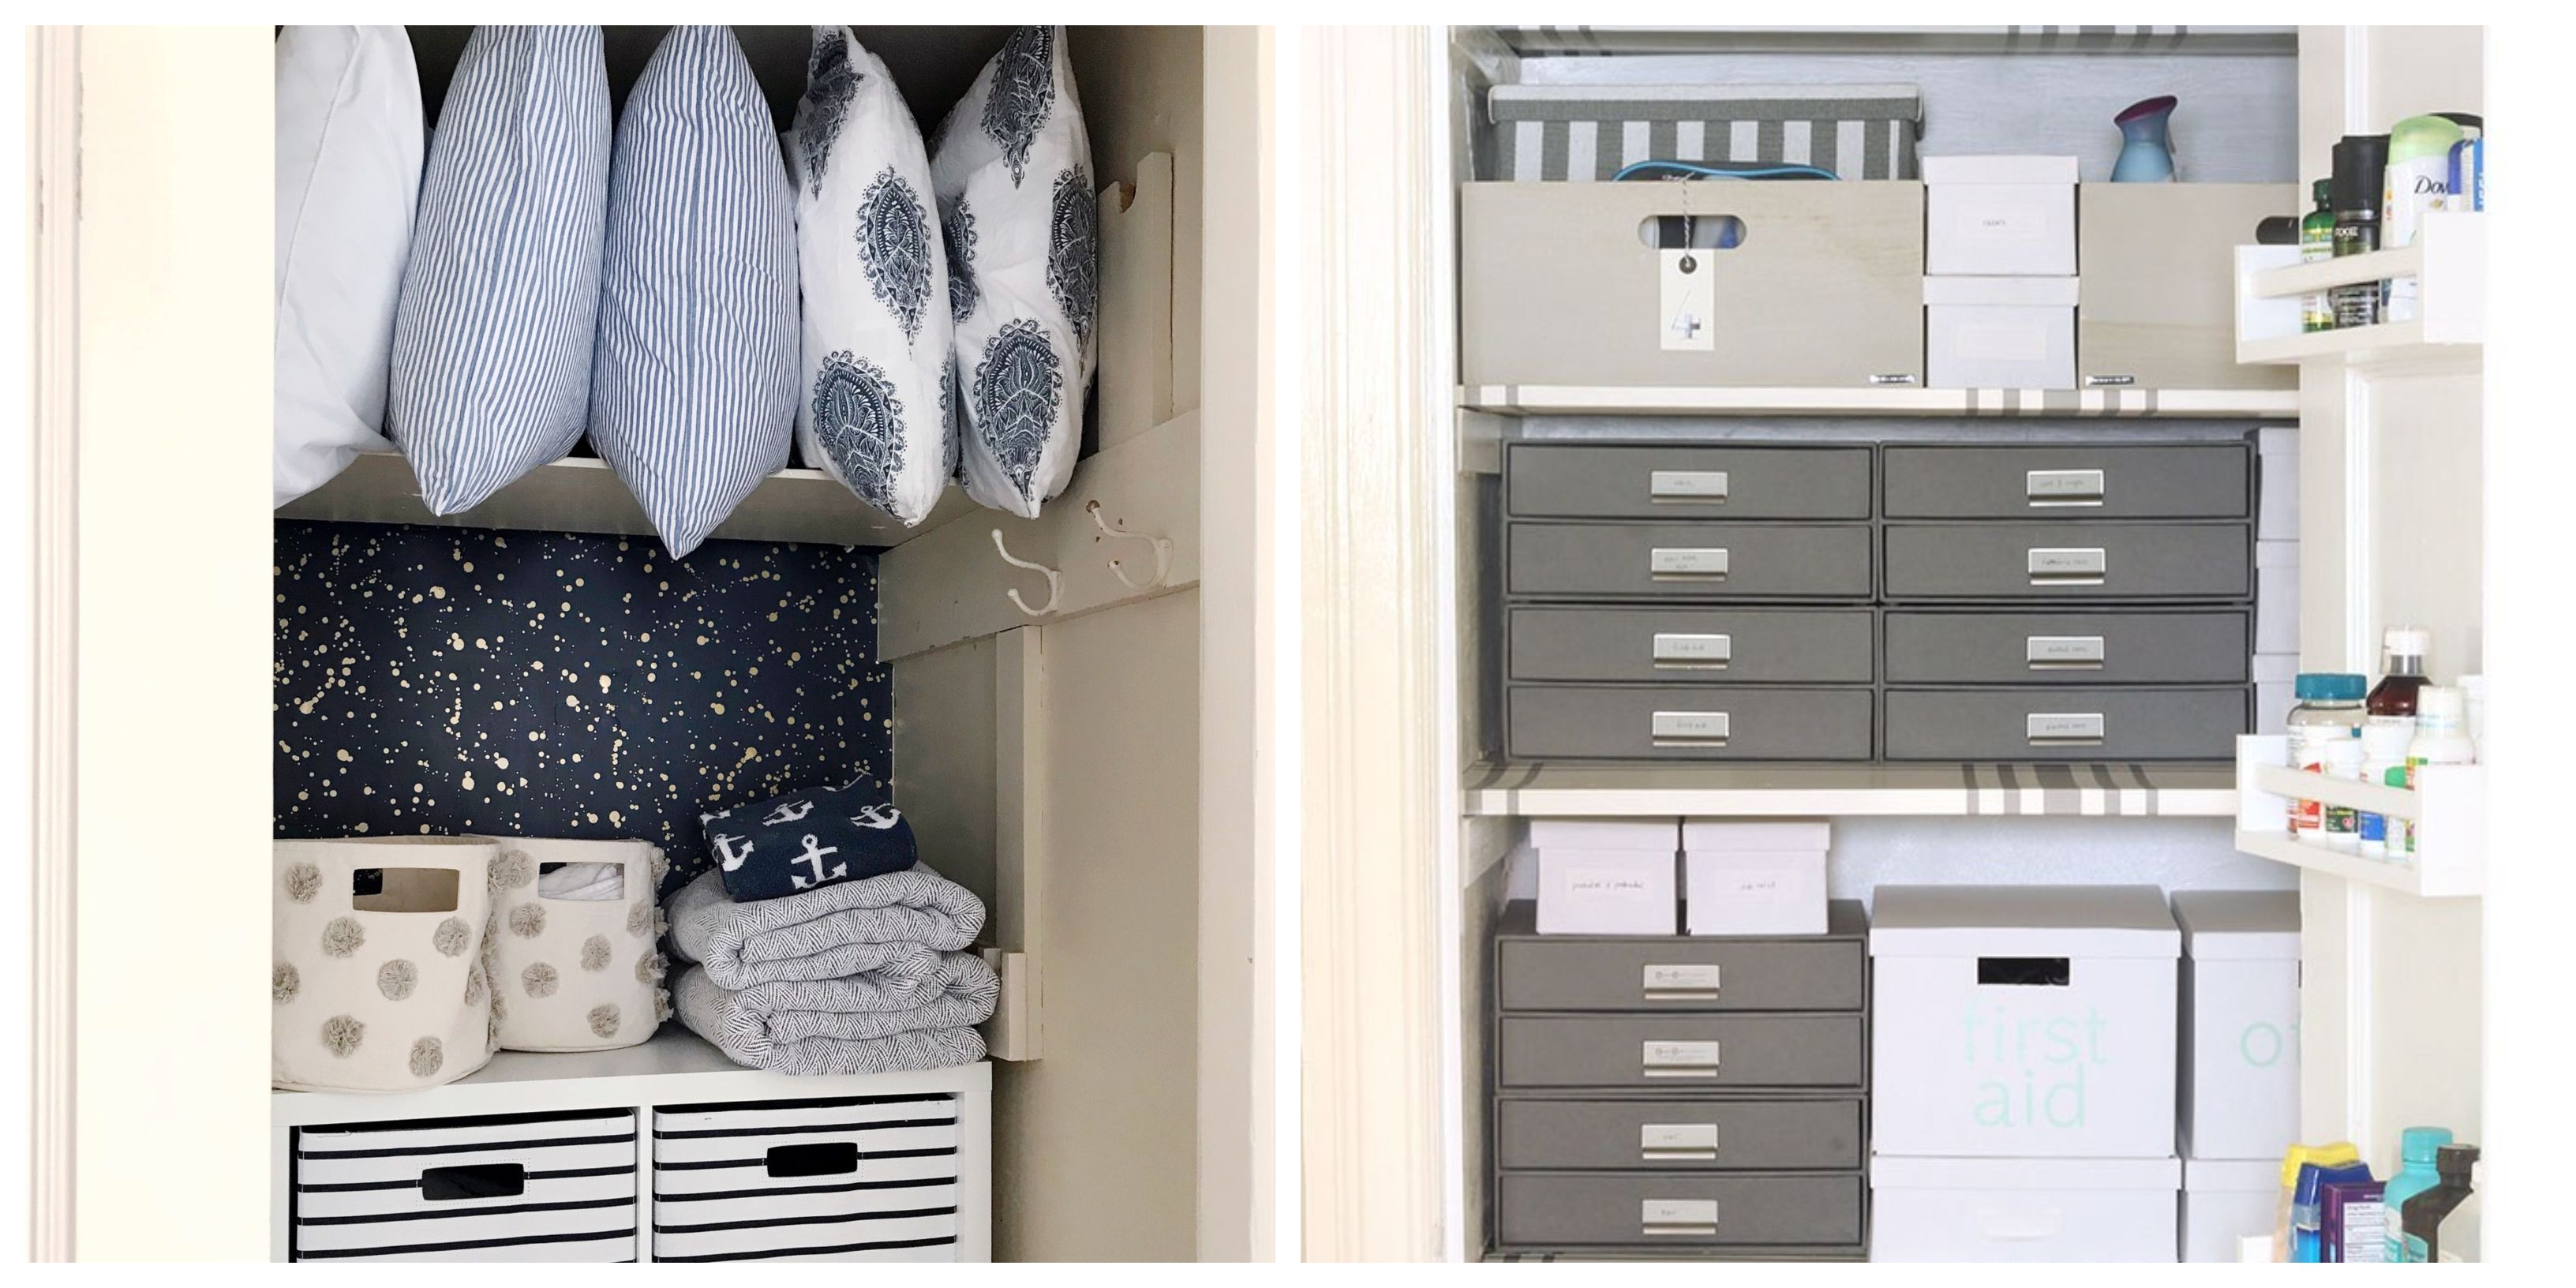 13 Easy and Affordable Ways to Organize Your Linen Closet